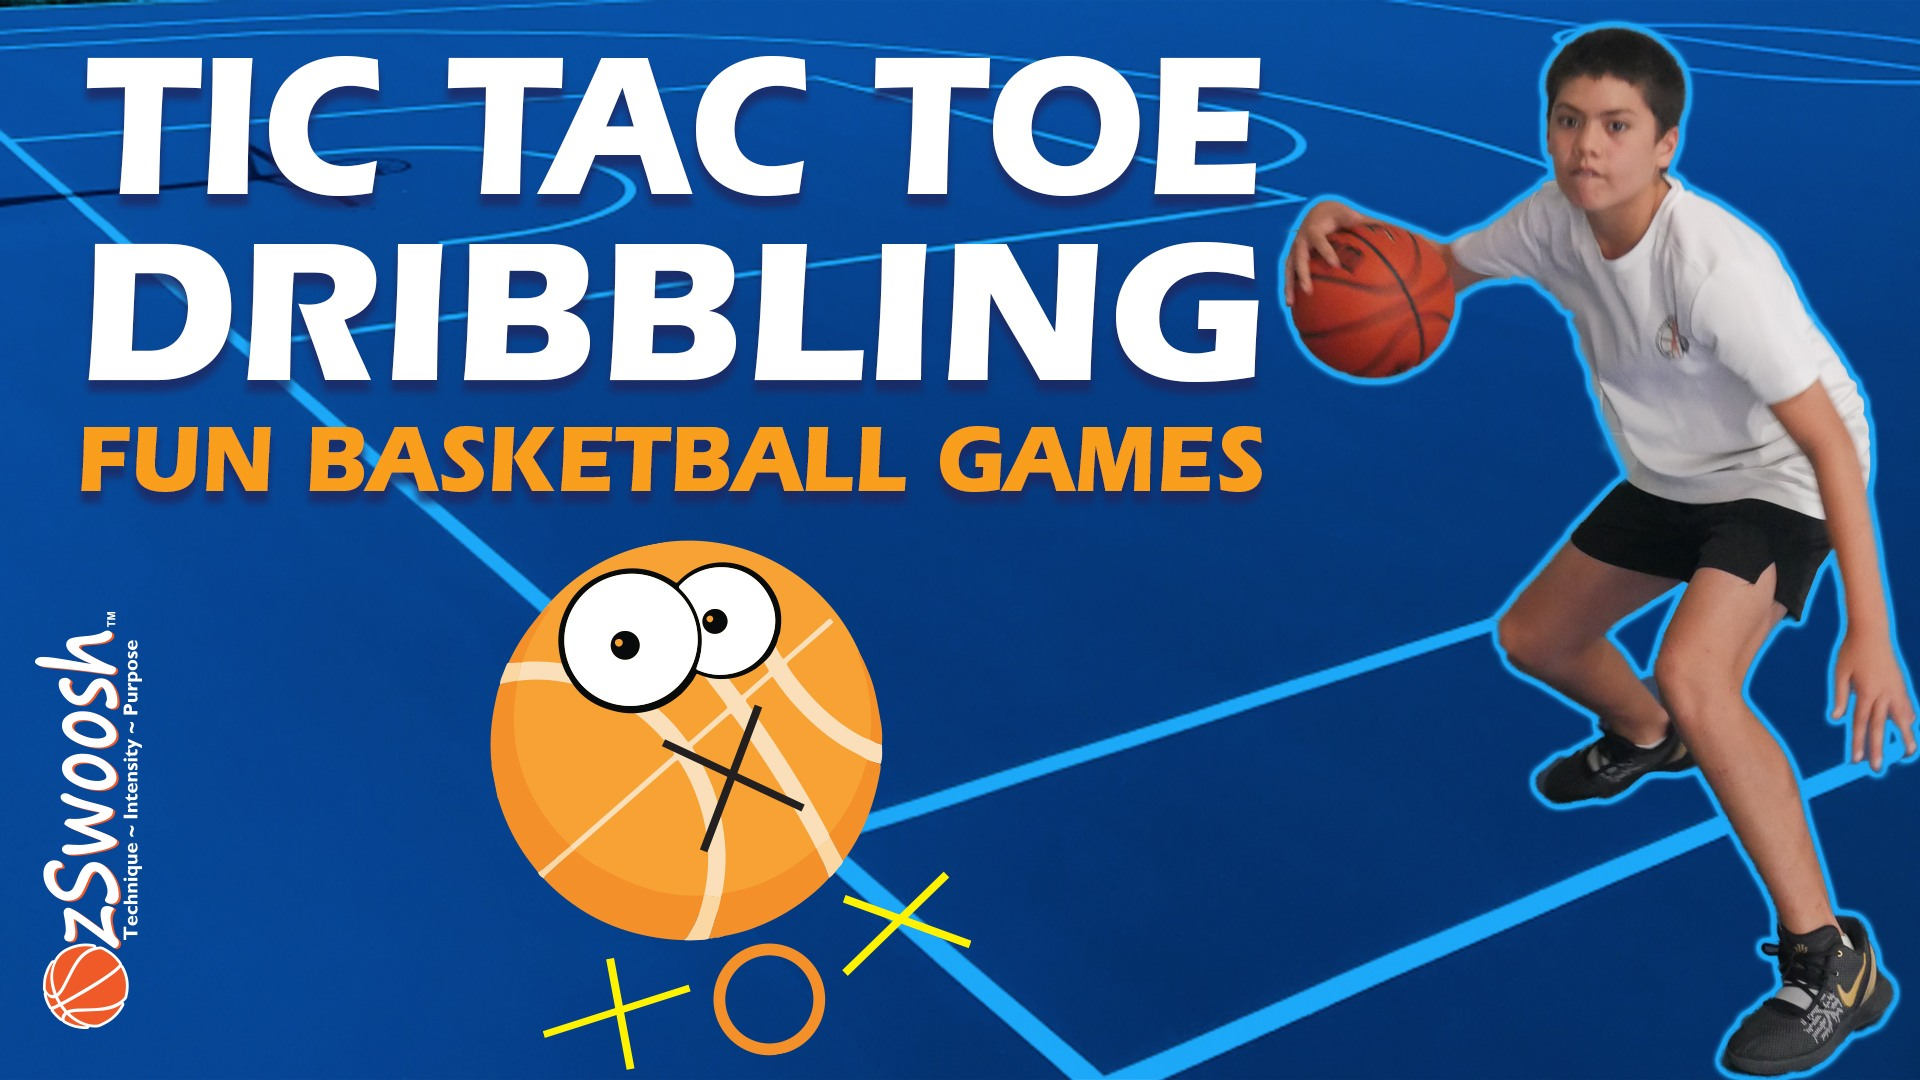 Fun Youth Basketball Drills For Kids - Tic Tac Toe (Dribbling Game)